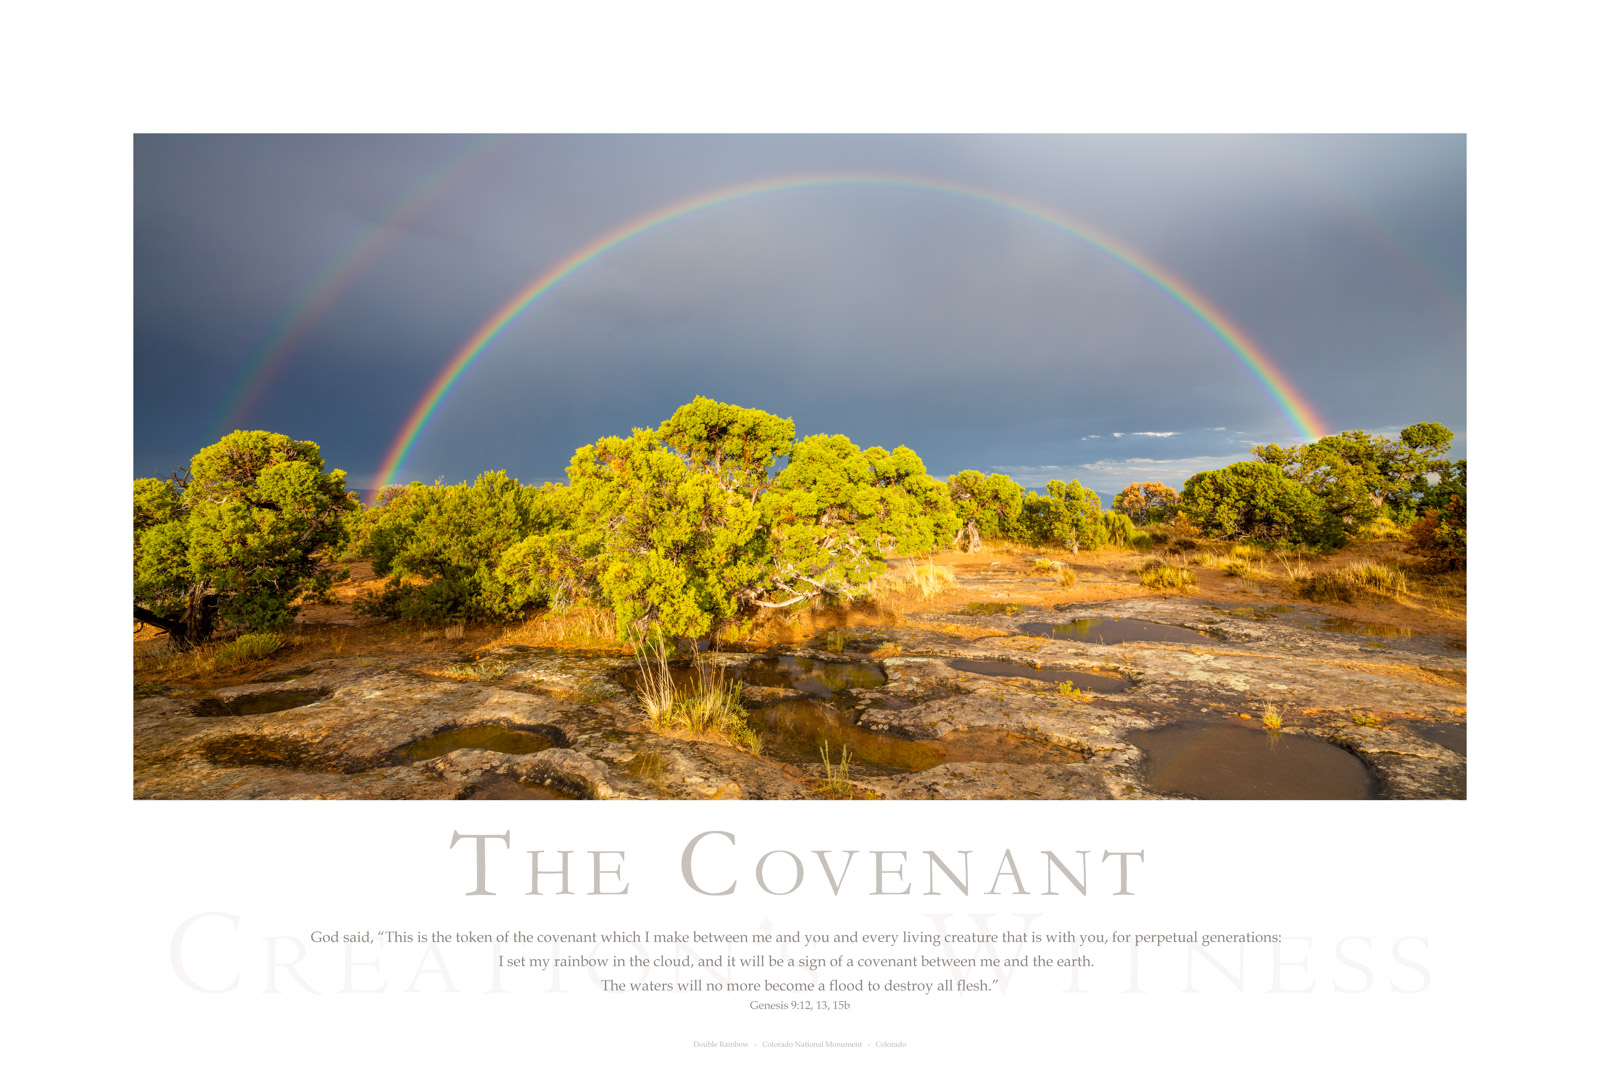 """God said, """"This is the token of the covenant which I make between me and you and every living creature that is with you, for..."""